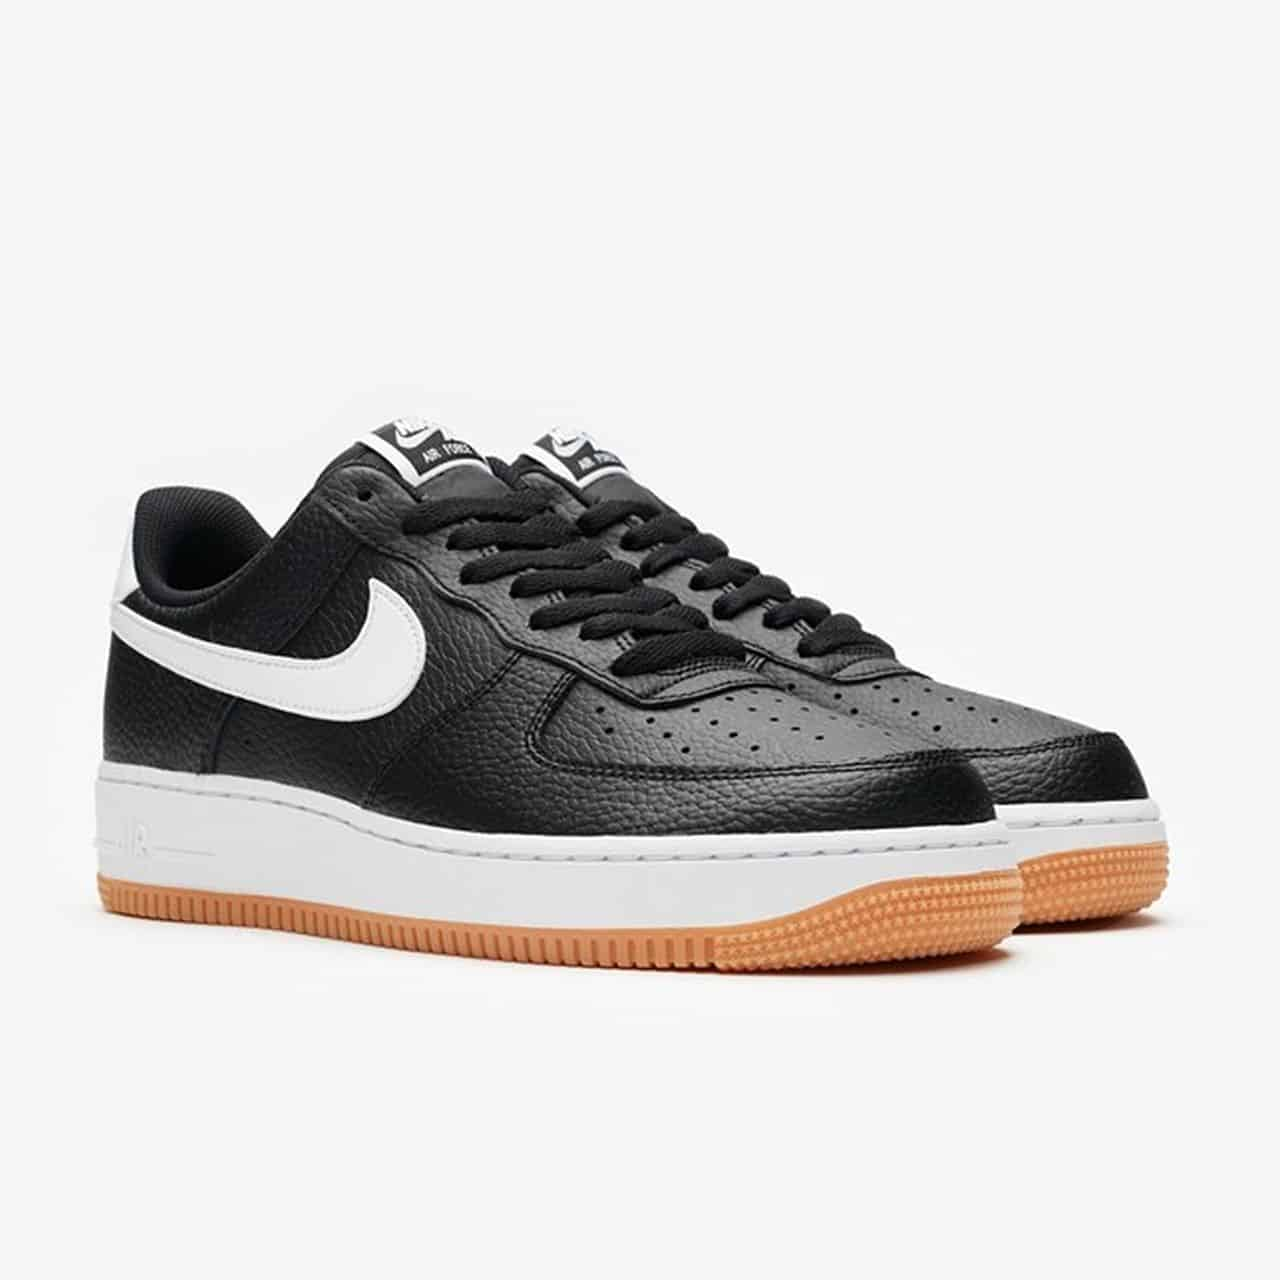 ADIDASI ORIGINALI NIKE AIR FORCE 1'07 2 - CI0057 002